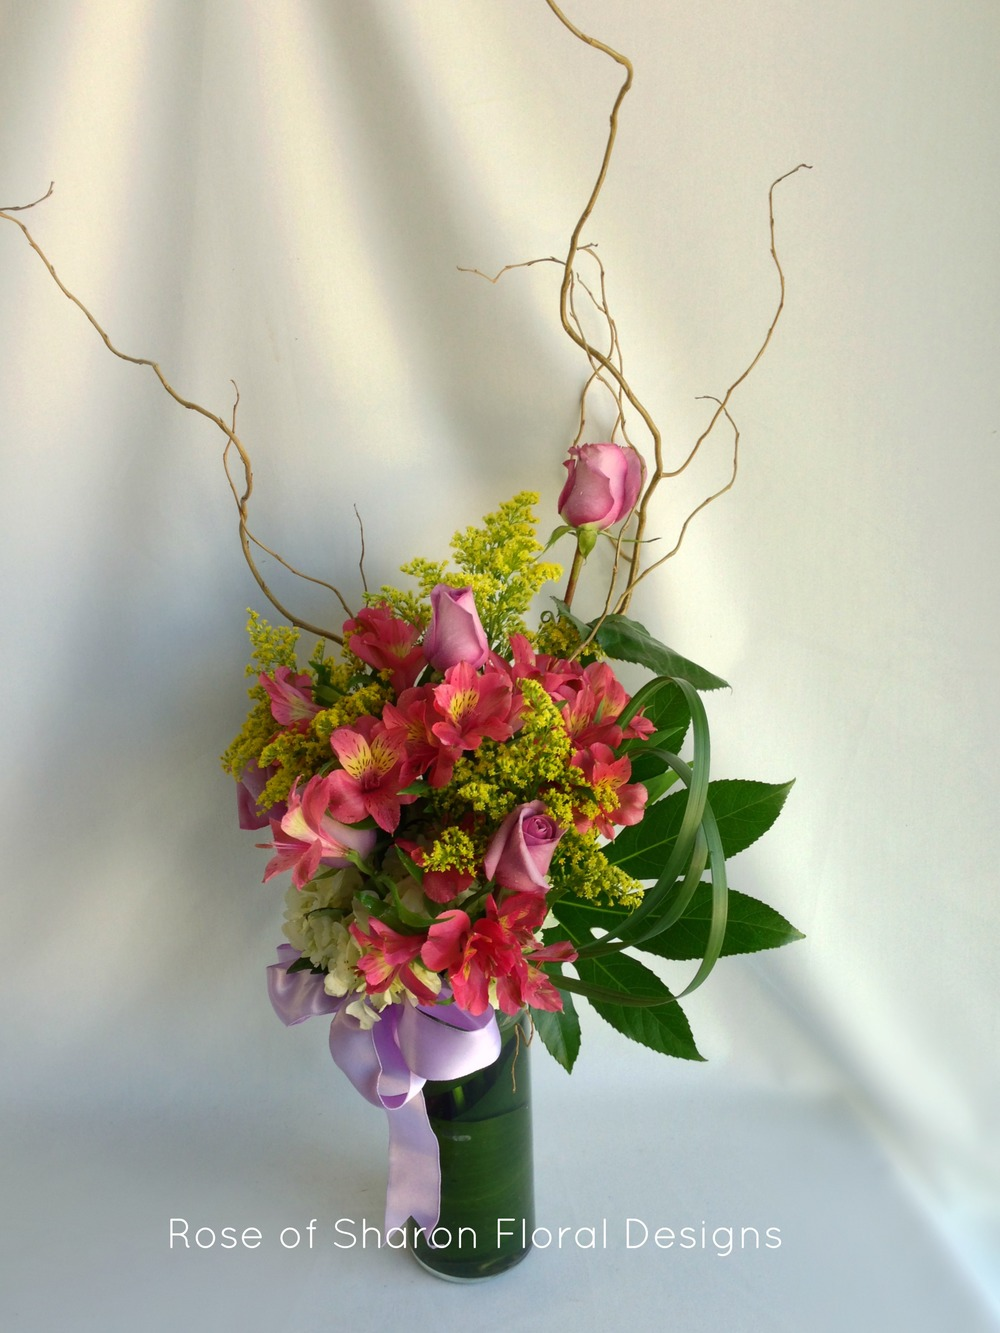 Contemporary Alstroemeria, Solidago and Rose Arrangement, Rose of Sharon Floral Designs